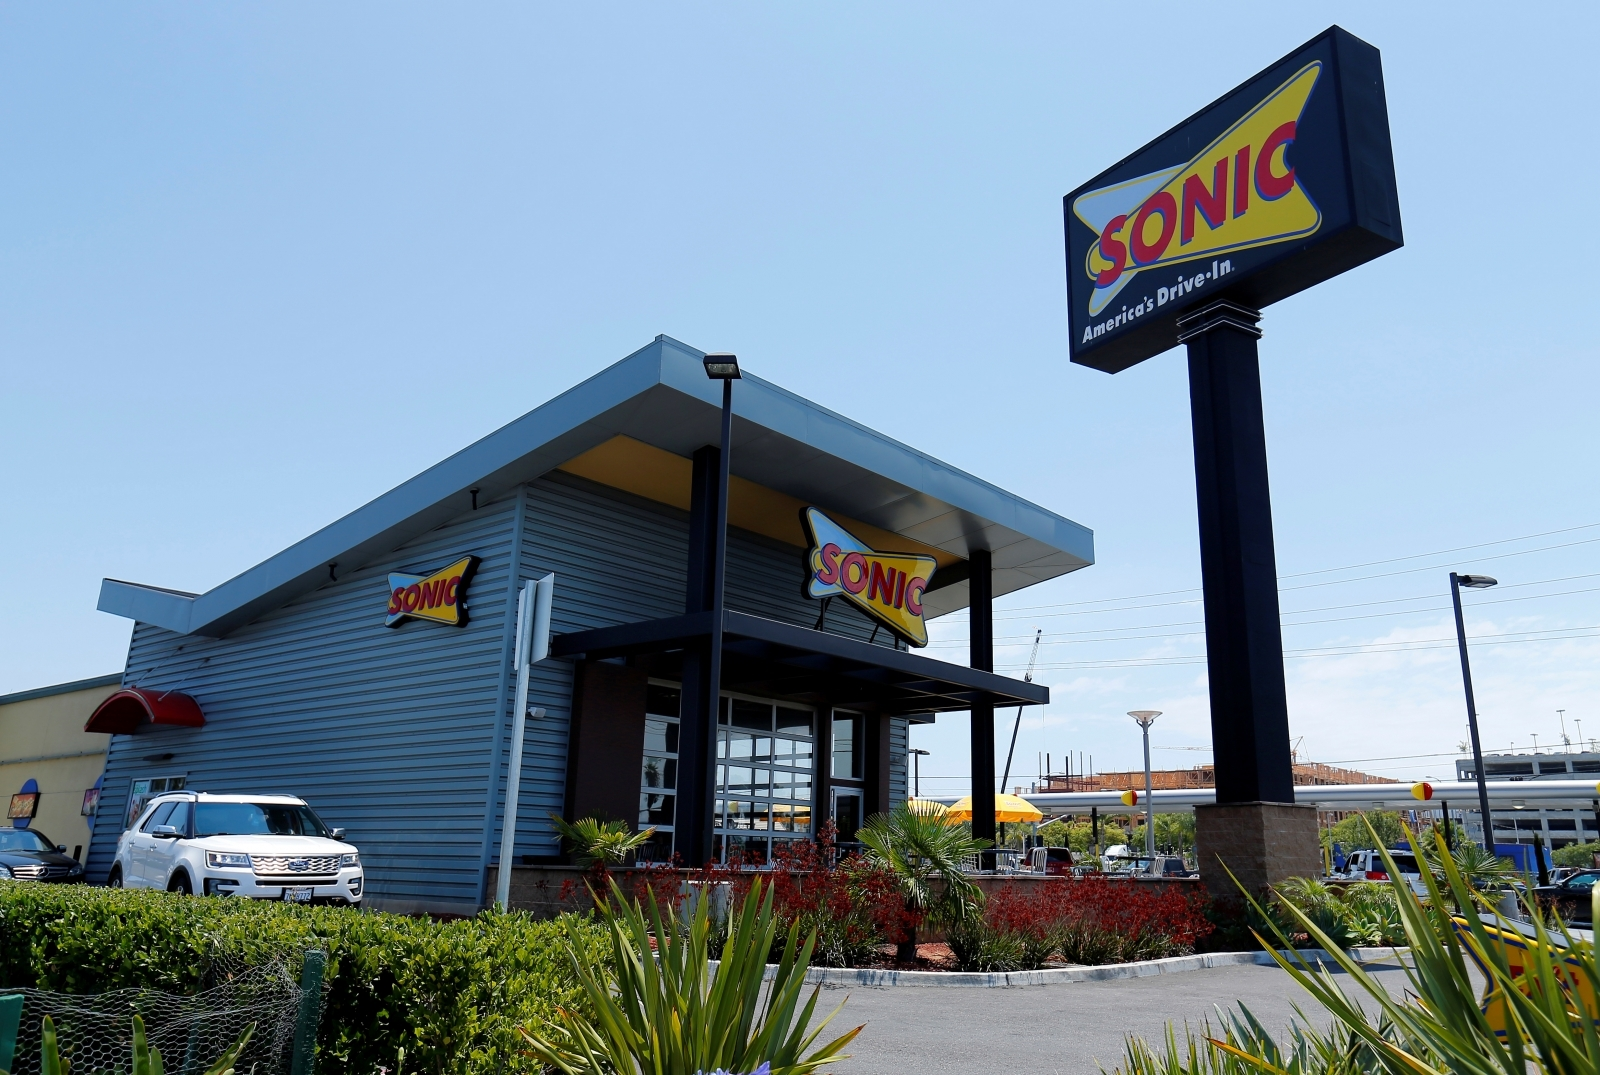 Sonic Says There's Been 'Unusual Activity' On Some Credit Cards